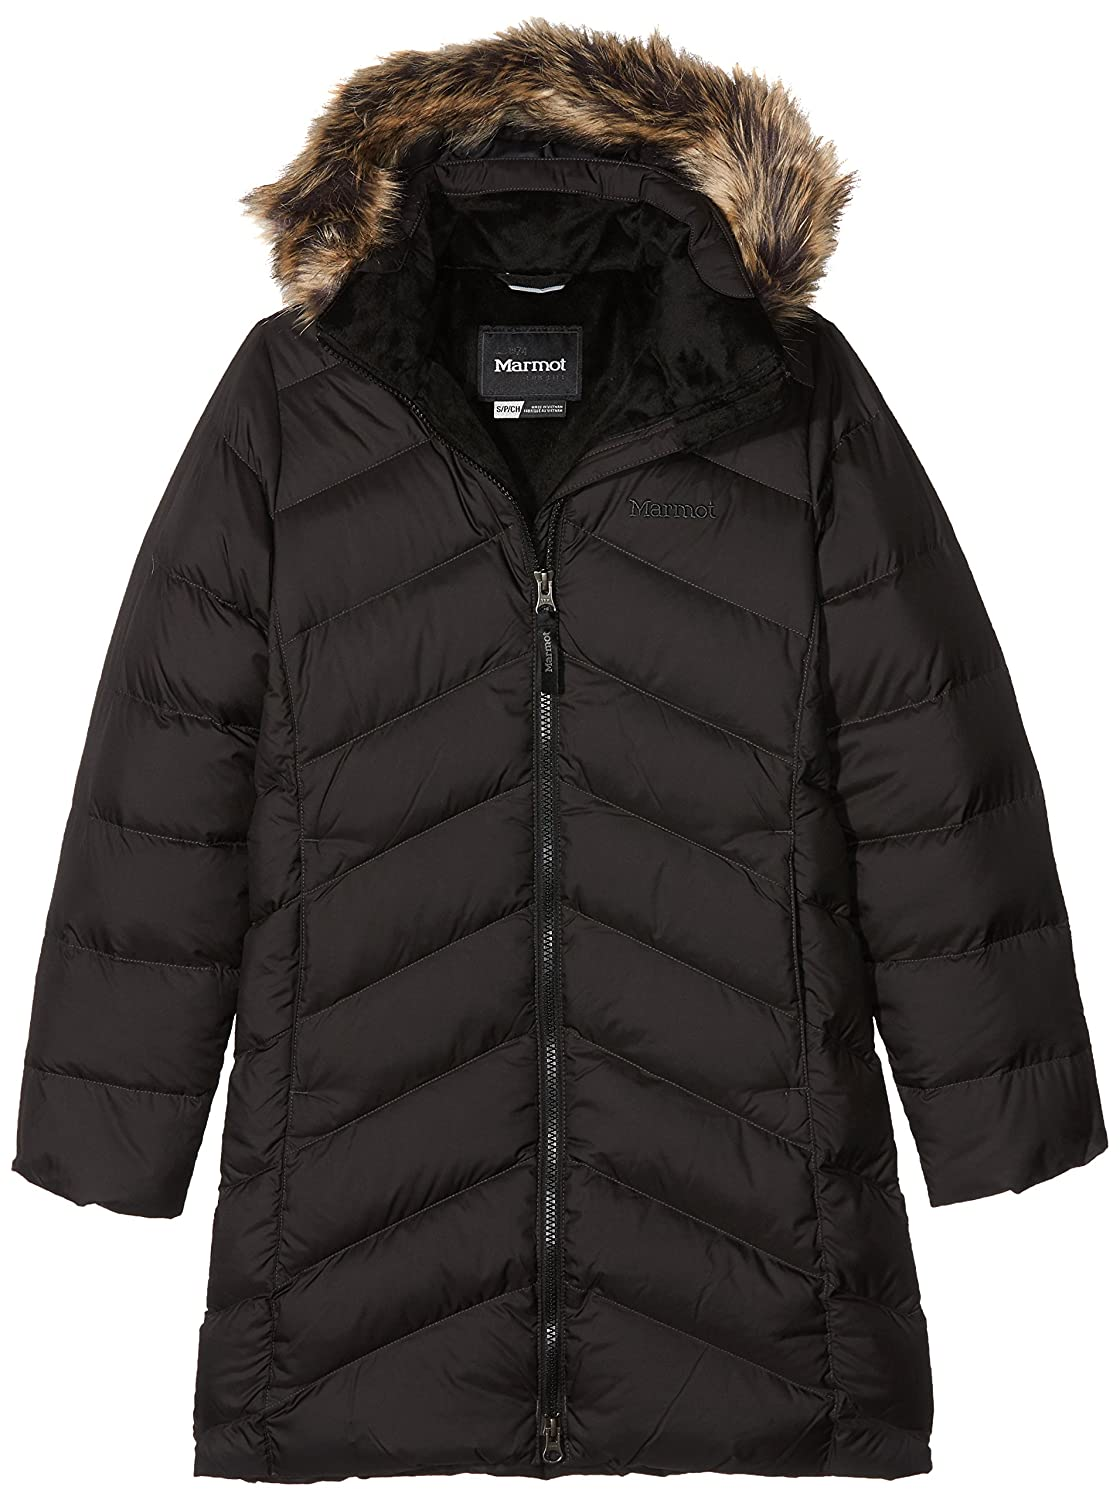 Marmot Girls' Montreaux Coat